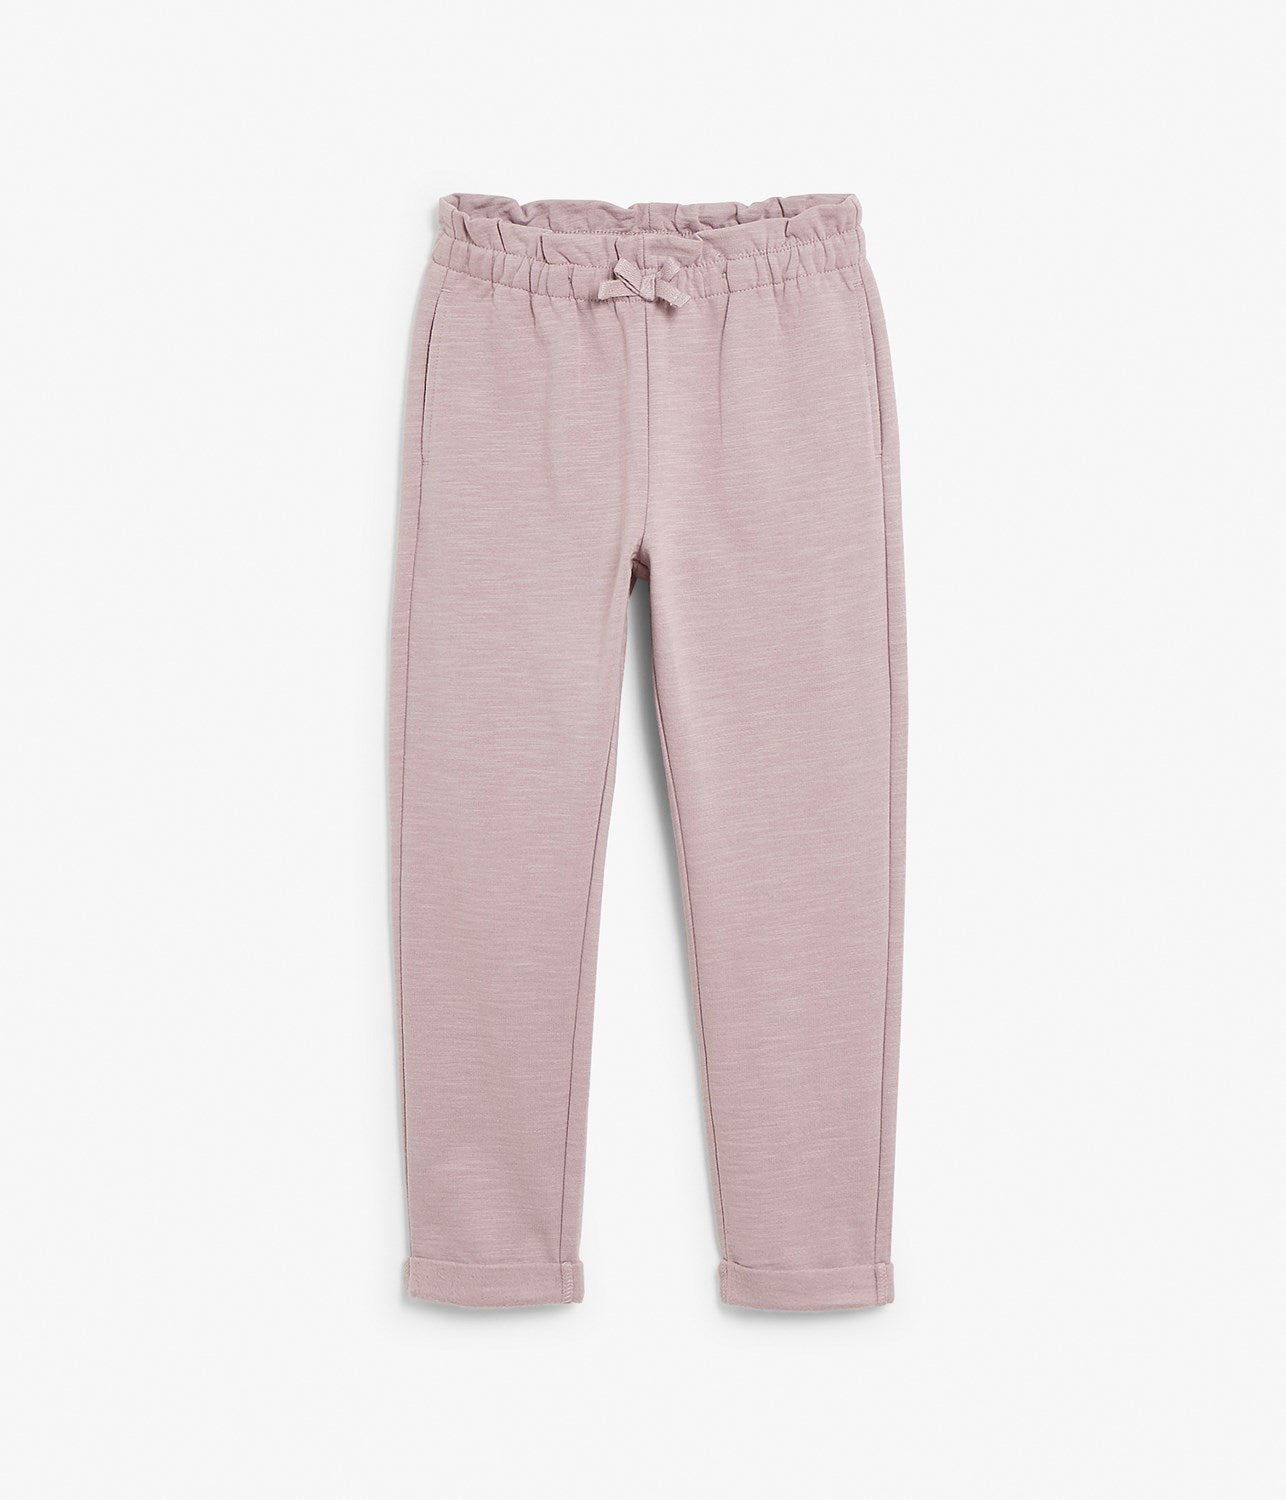 Kids purple jogging trousers